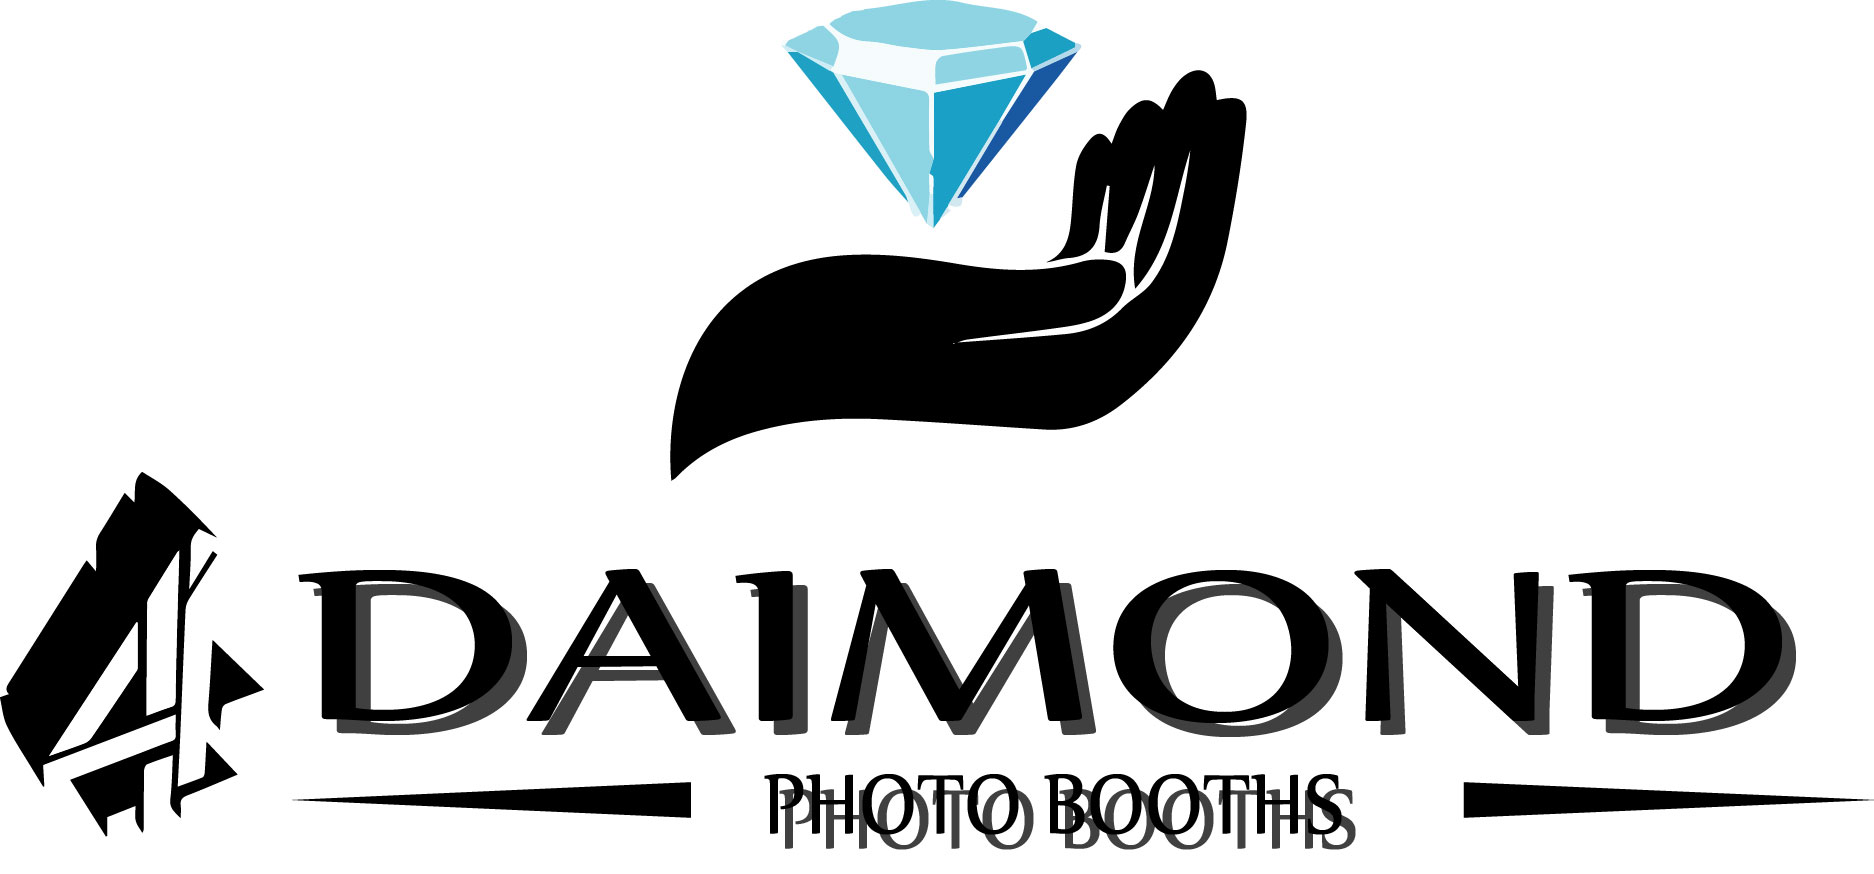 Logo Design by Business Ideas - Entry No. 30 in the Logo Design Contest Creative Logo Design for 4 Diamond Photo Booths.